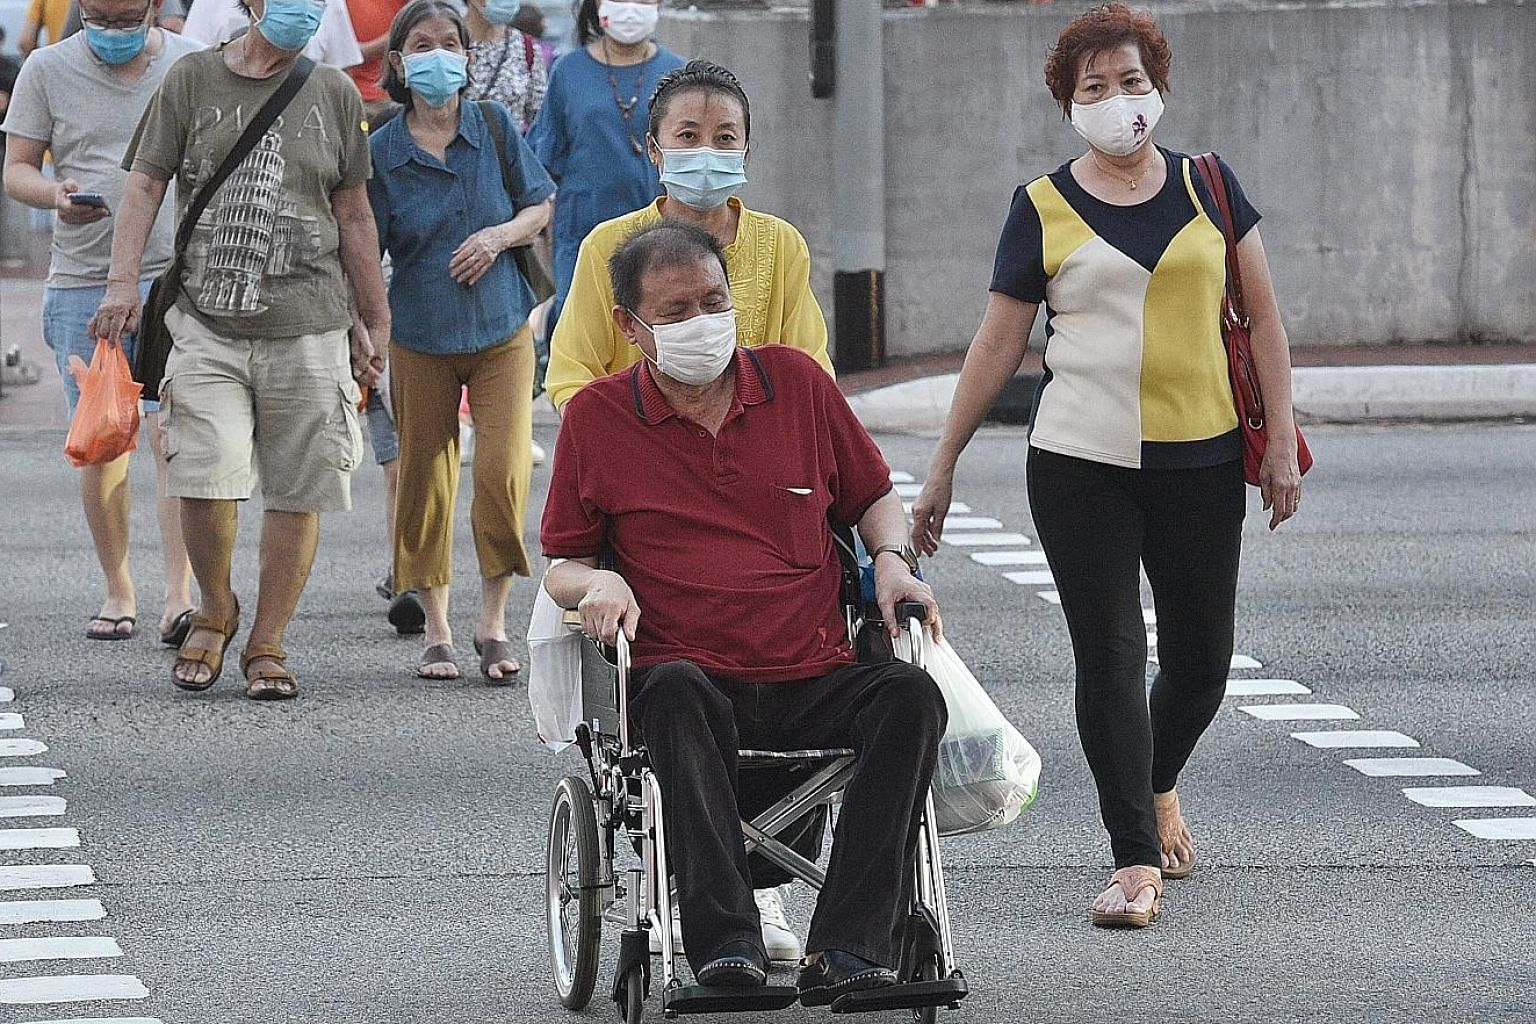 People such as those with physical or mental disabilities, seniors, low-income families and displaced workers should not be left behind as Singapore progresses, said several MPs in Parliament yesterday. ST PHOTO: DESMOND WEE